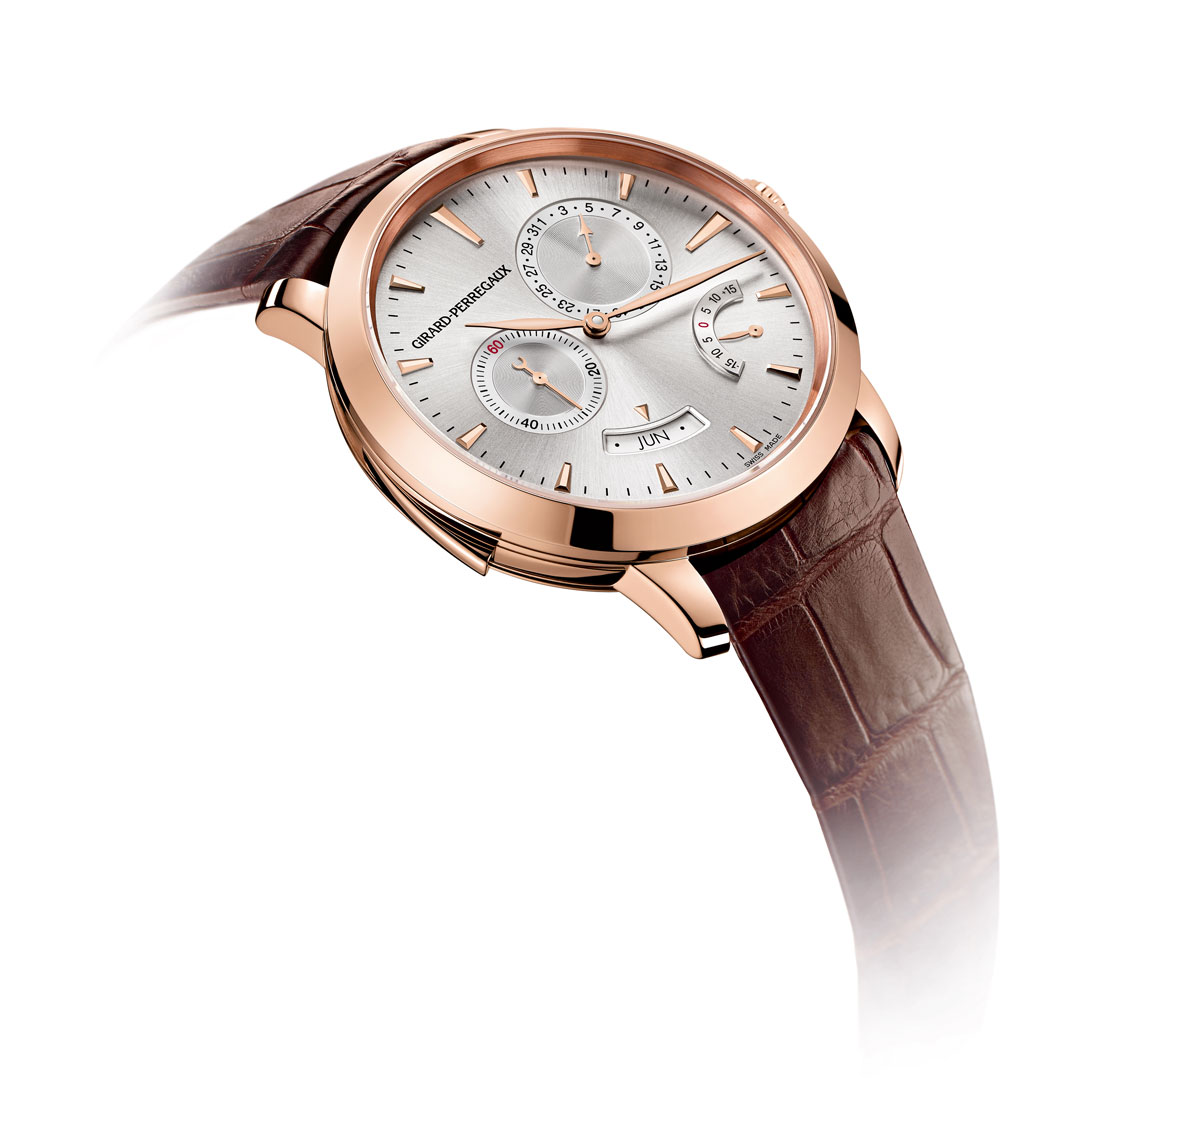 Girard perregaux 1966 minute repeater annual calendar equation of time watch extravaganzi for Girard perregaux